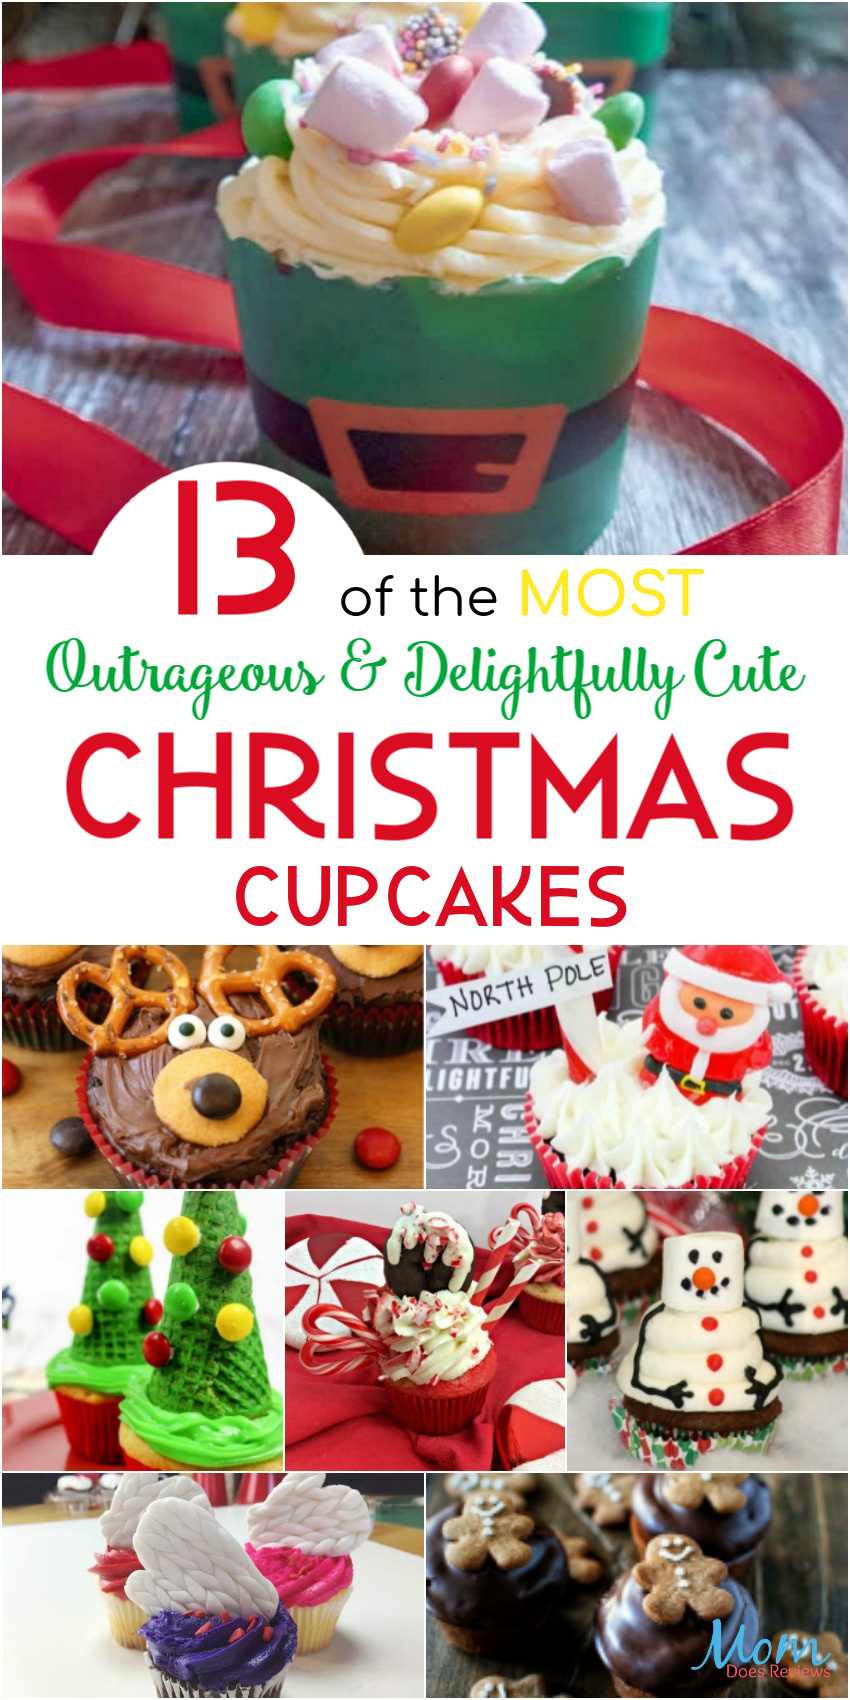 13 of the MOST Delightfully Cute & Outrageous Christmas #Cupcakes #recipes #funfood #foodie